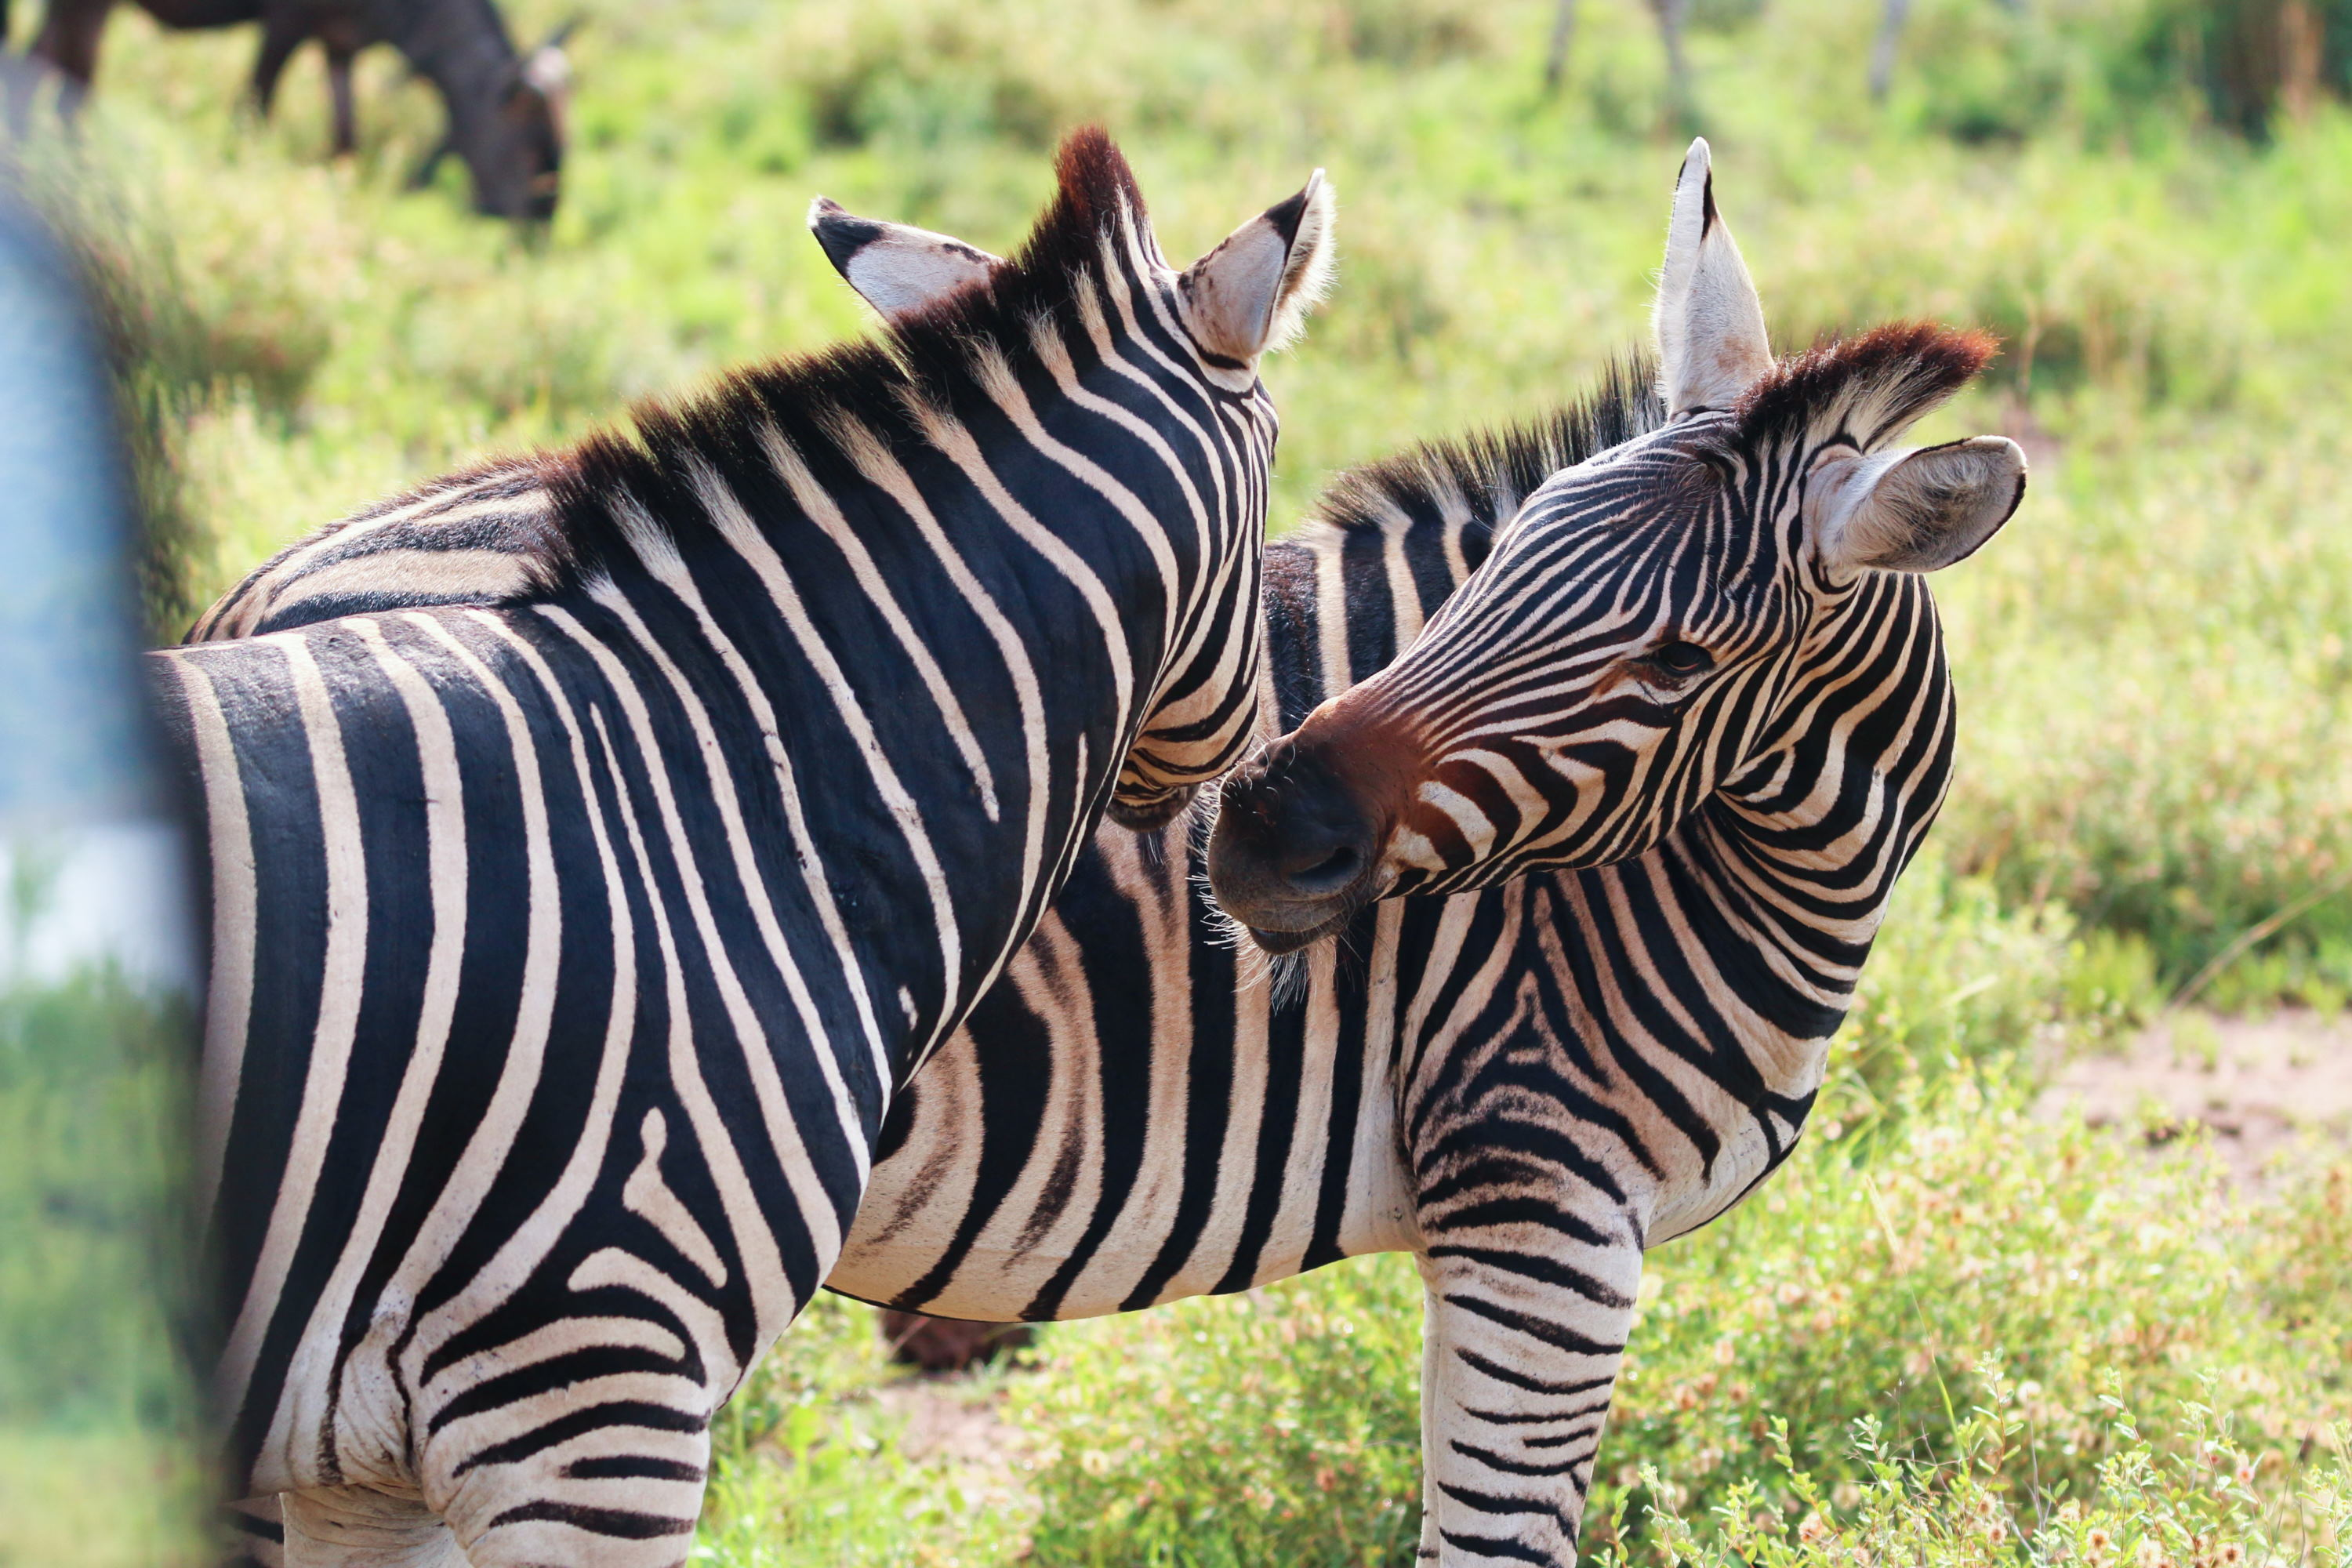 Two zebras socializing (Photo by Stephen Chan)